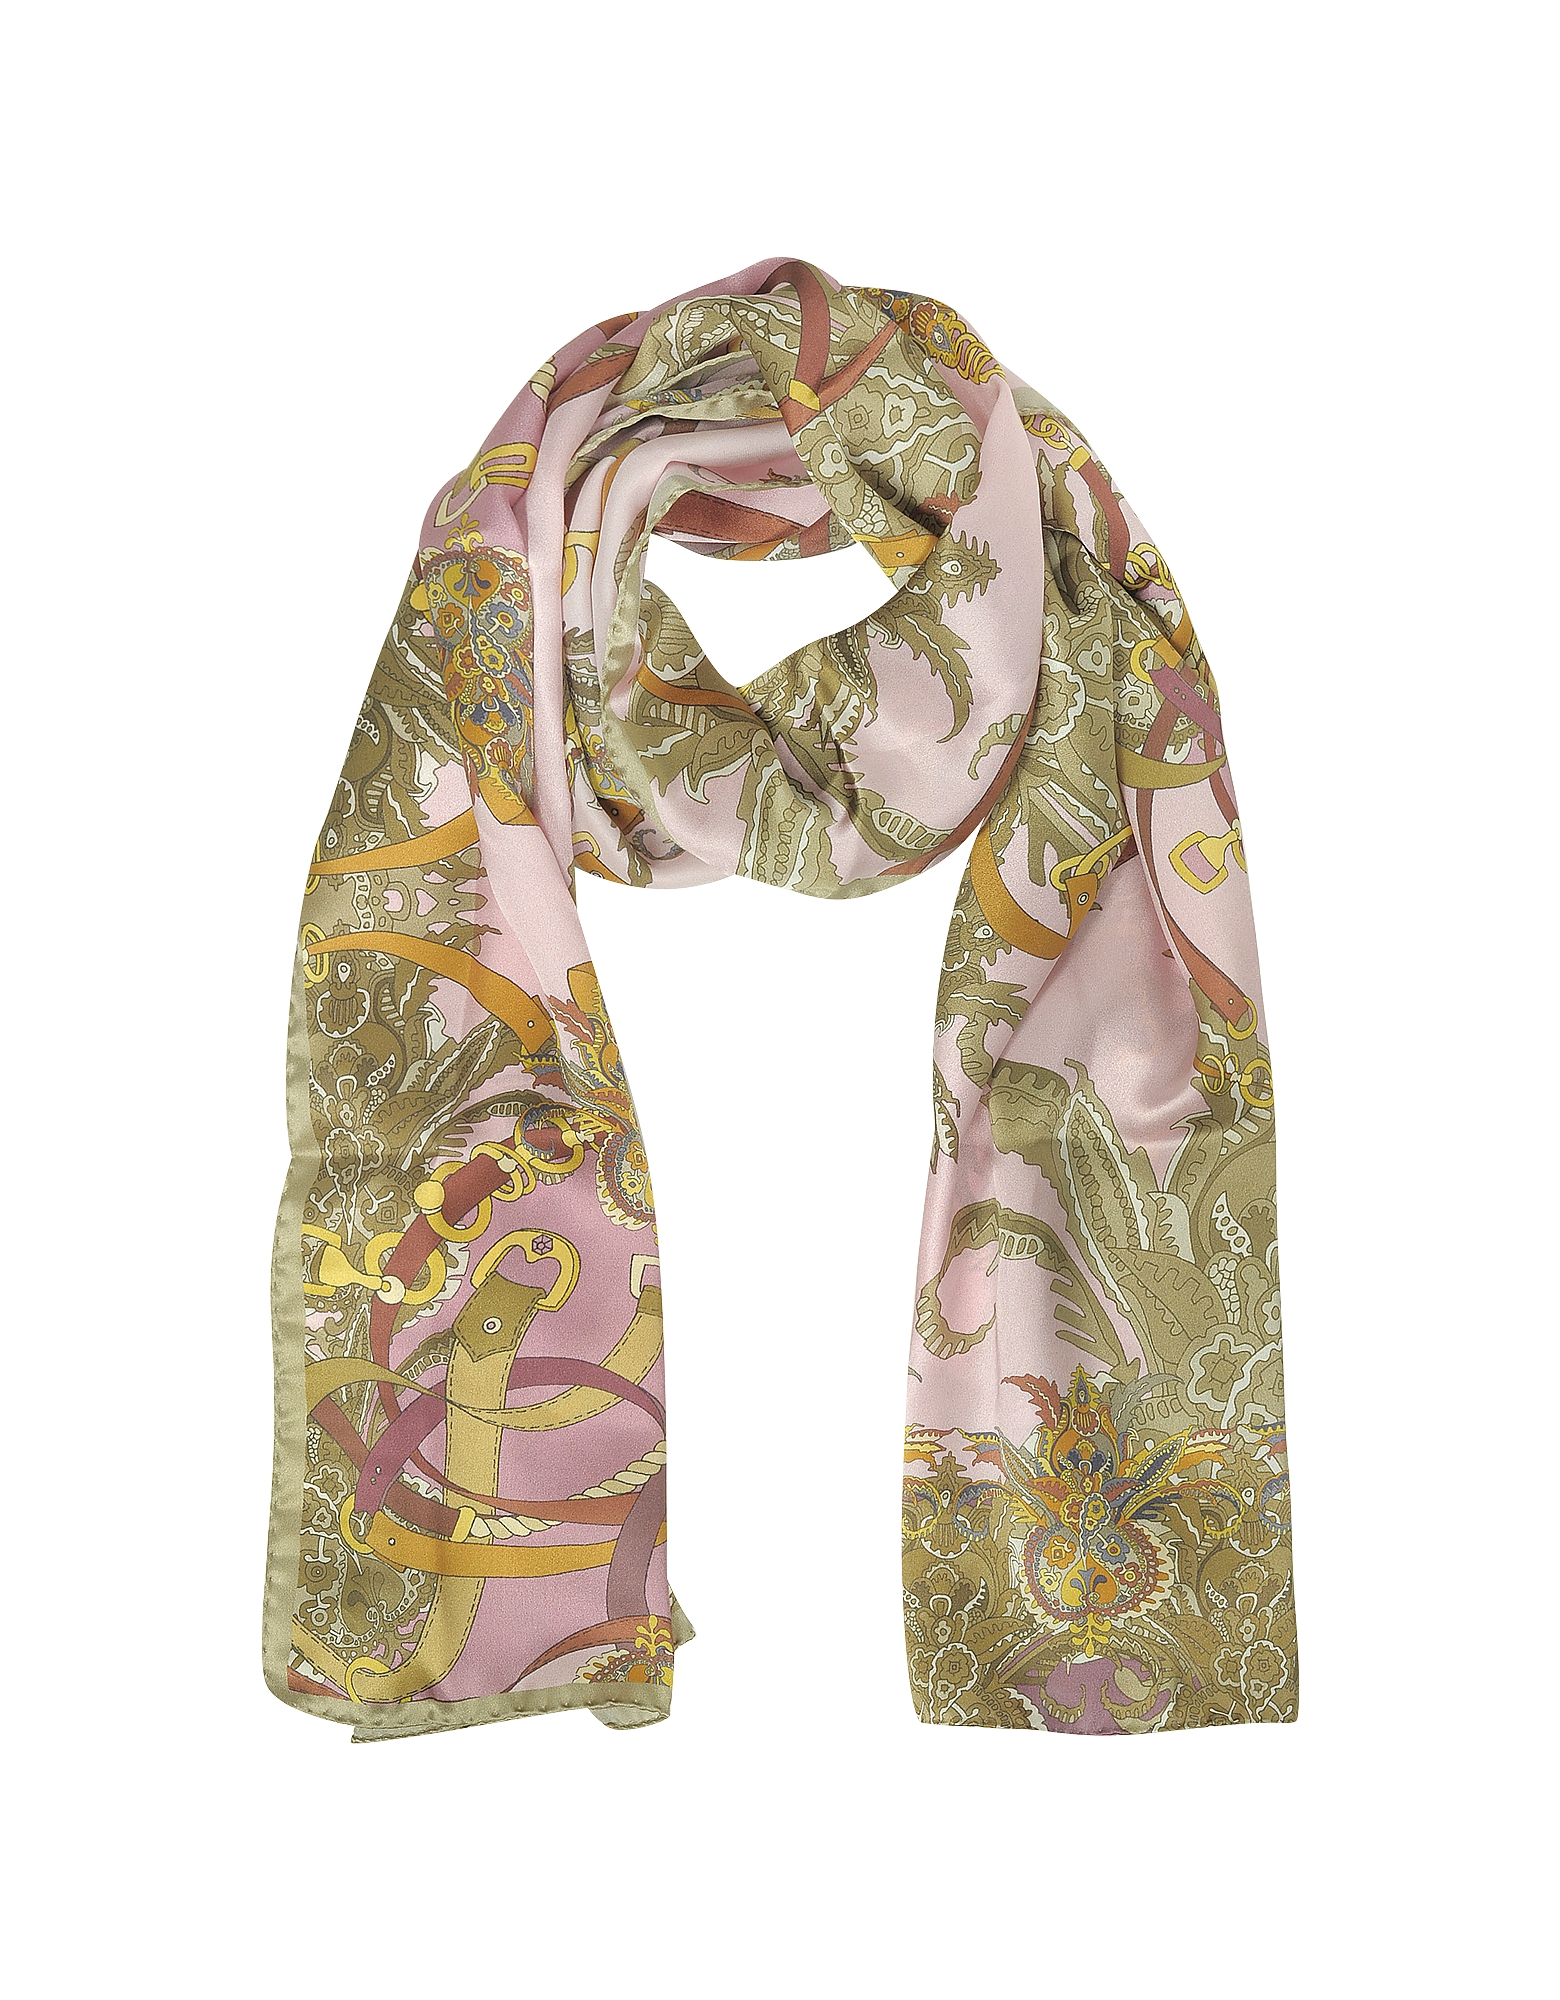 Mila Schon Long Scarves, Ornamental and Pattern Printed Satin Silk Stole